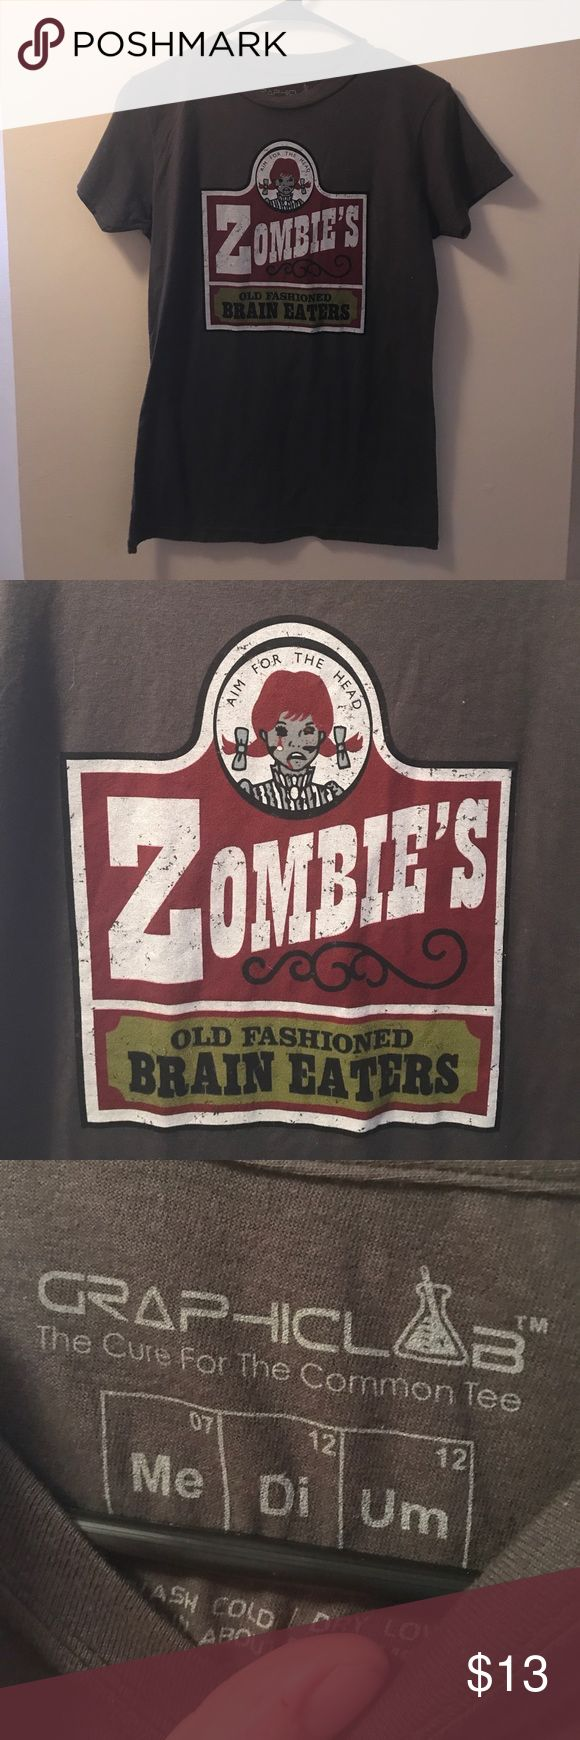 """Wendy's Logo Spoof Zombies Tee Women's Medium Brand is graphic Lab tees - it's a spoof on the Wendy's logo """"zombies old fashioned brain eaters aim for the head"""" size Medium Graphic Lab Tees Tops Tees - Short Sleeve"""